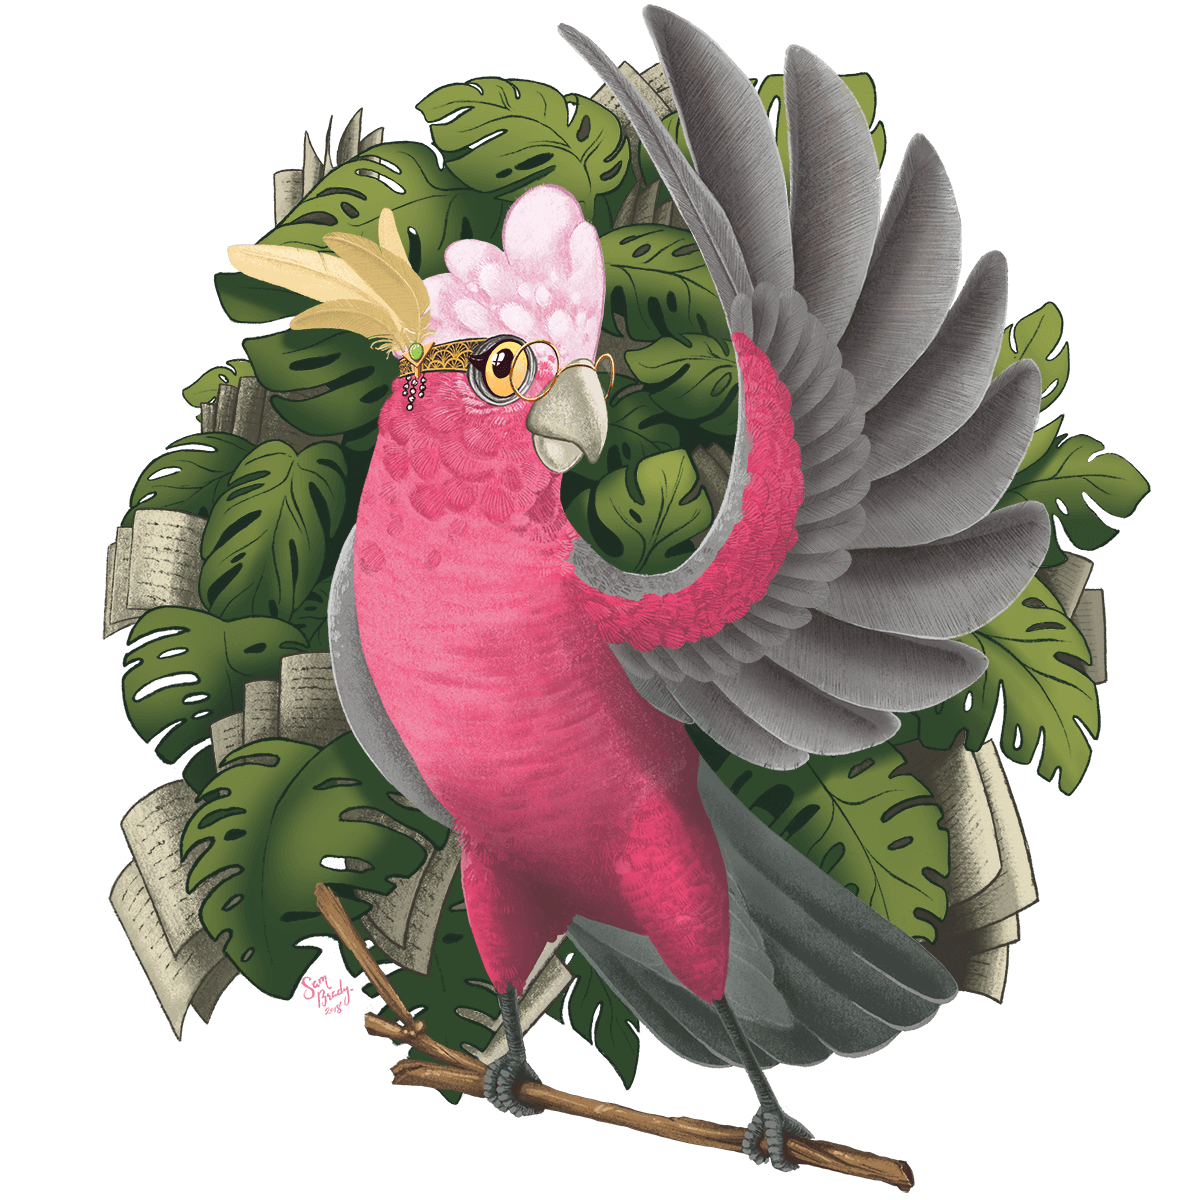 Gallah Illustration